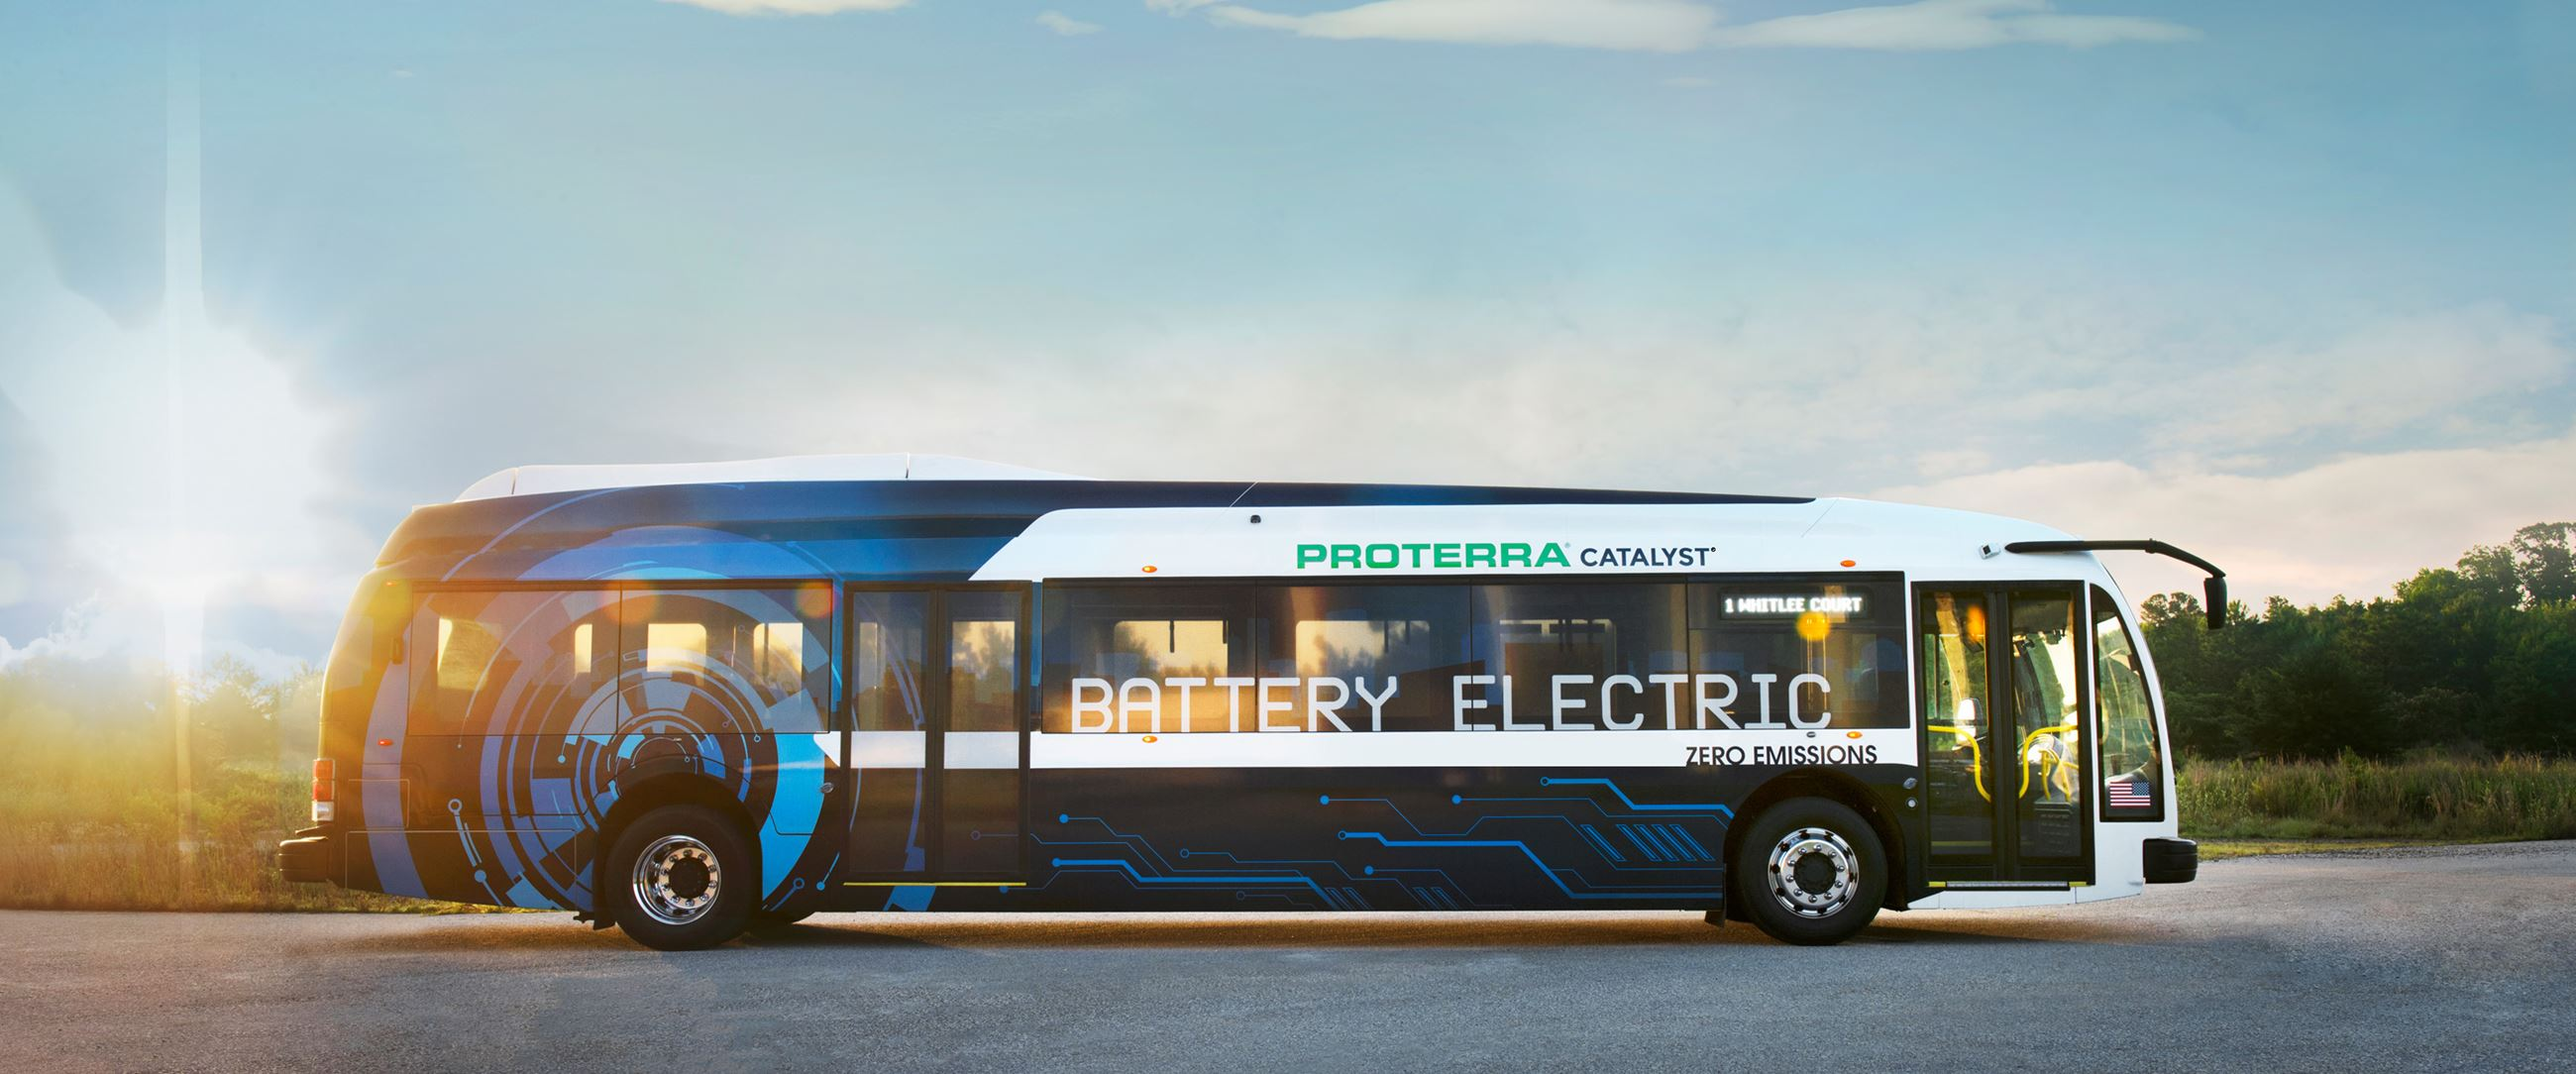 Image of Proterra bus